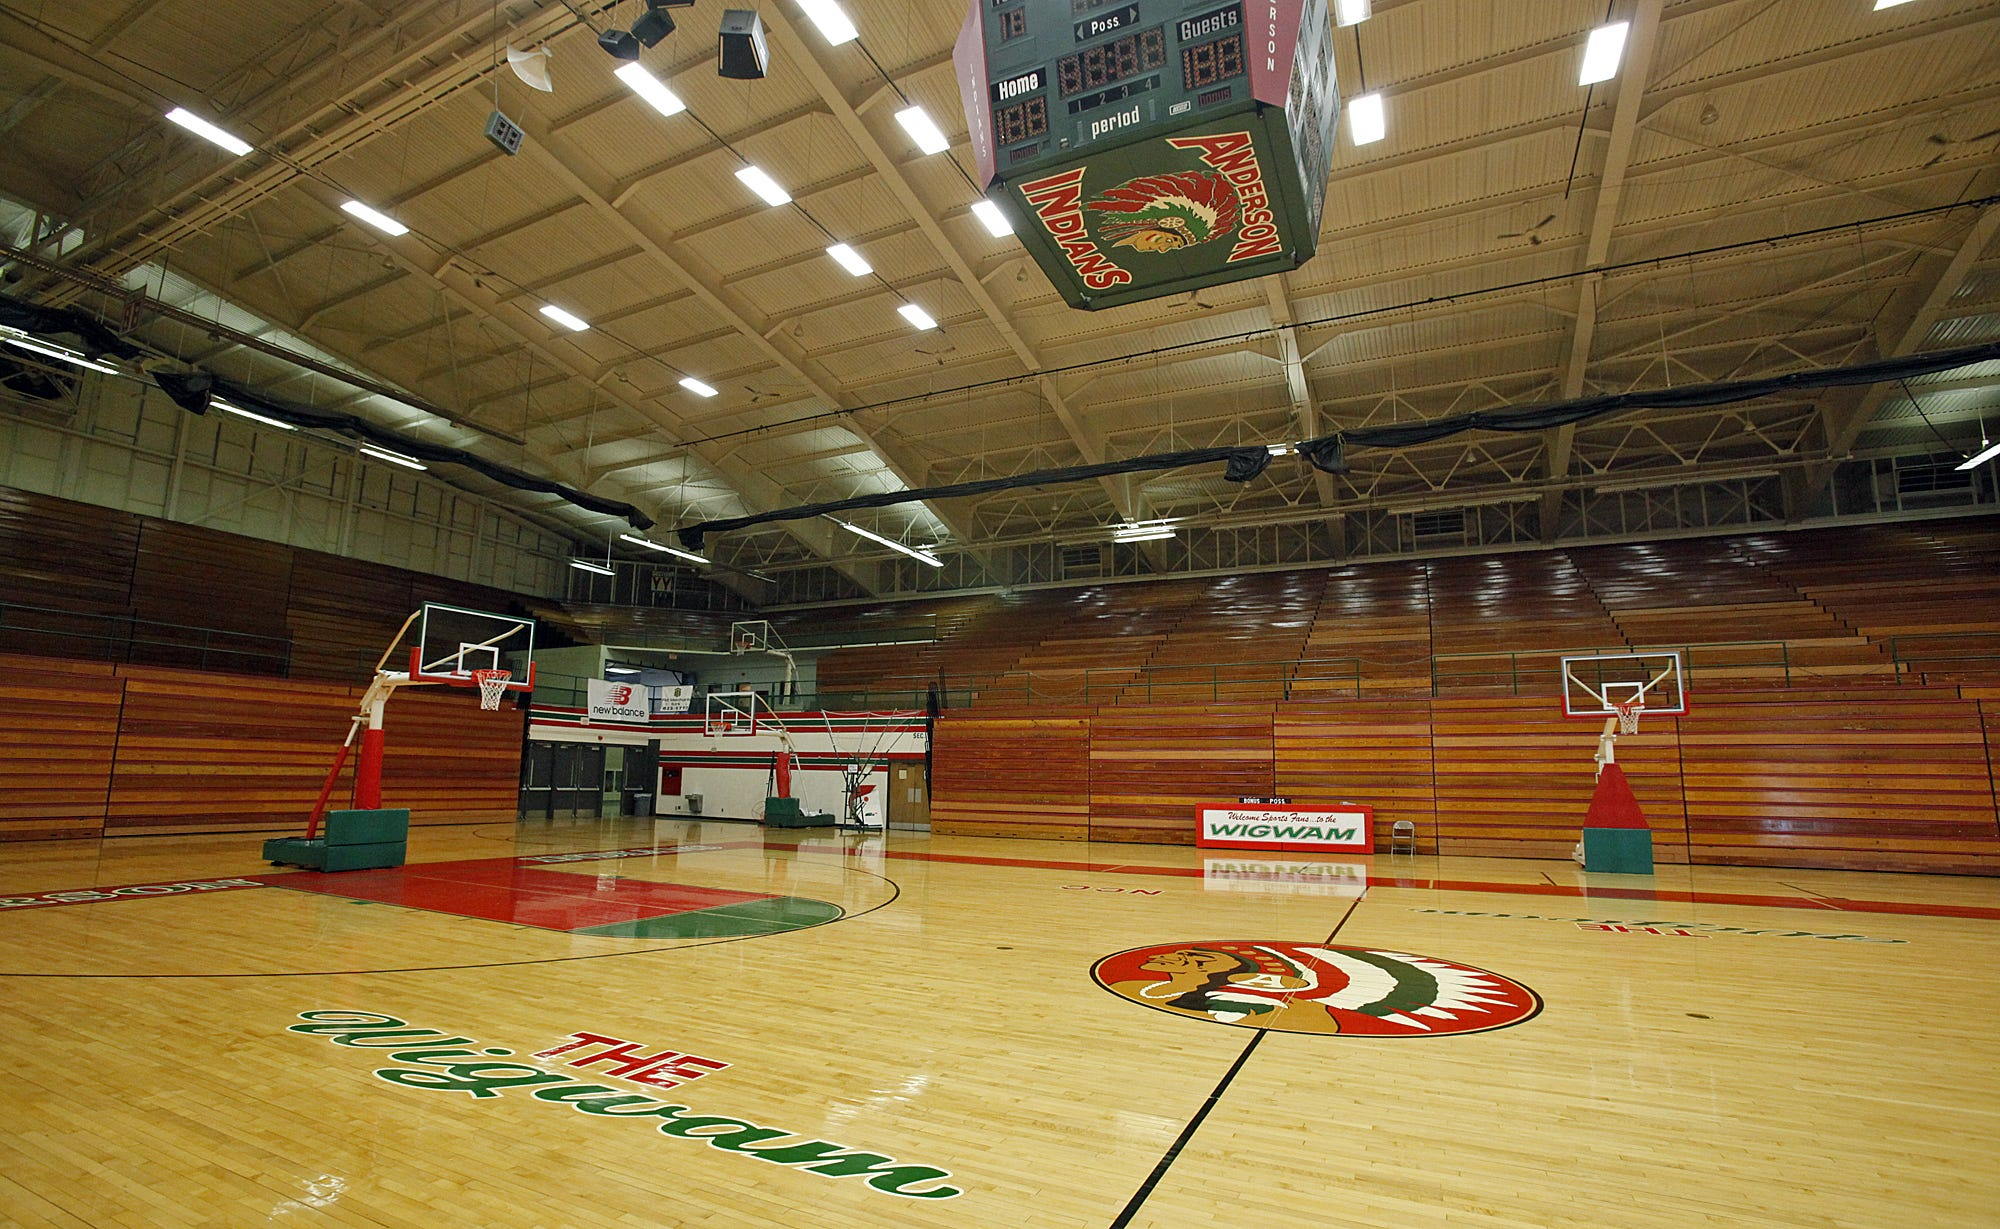 Group backs out of deal for Anderson's Wigwam gym | USA ...